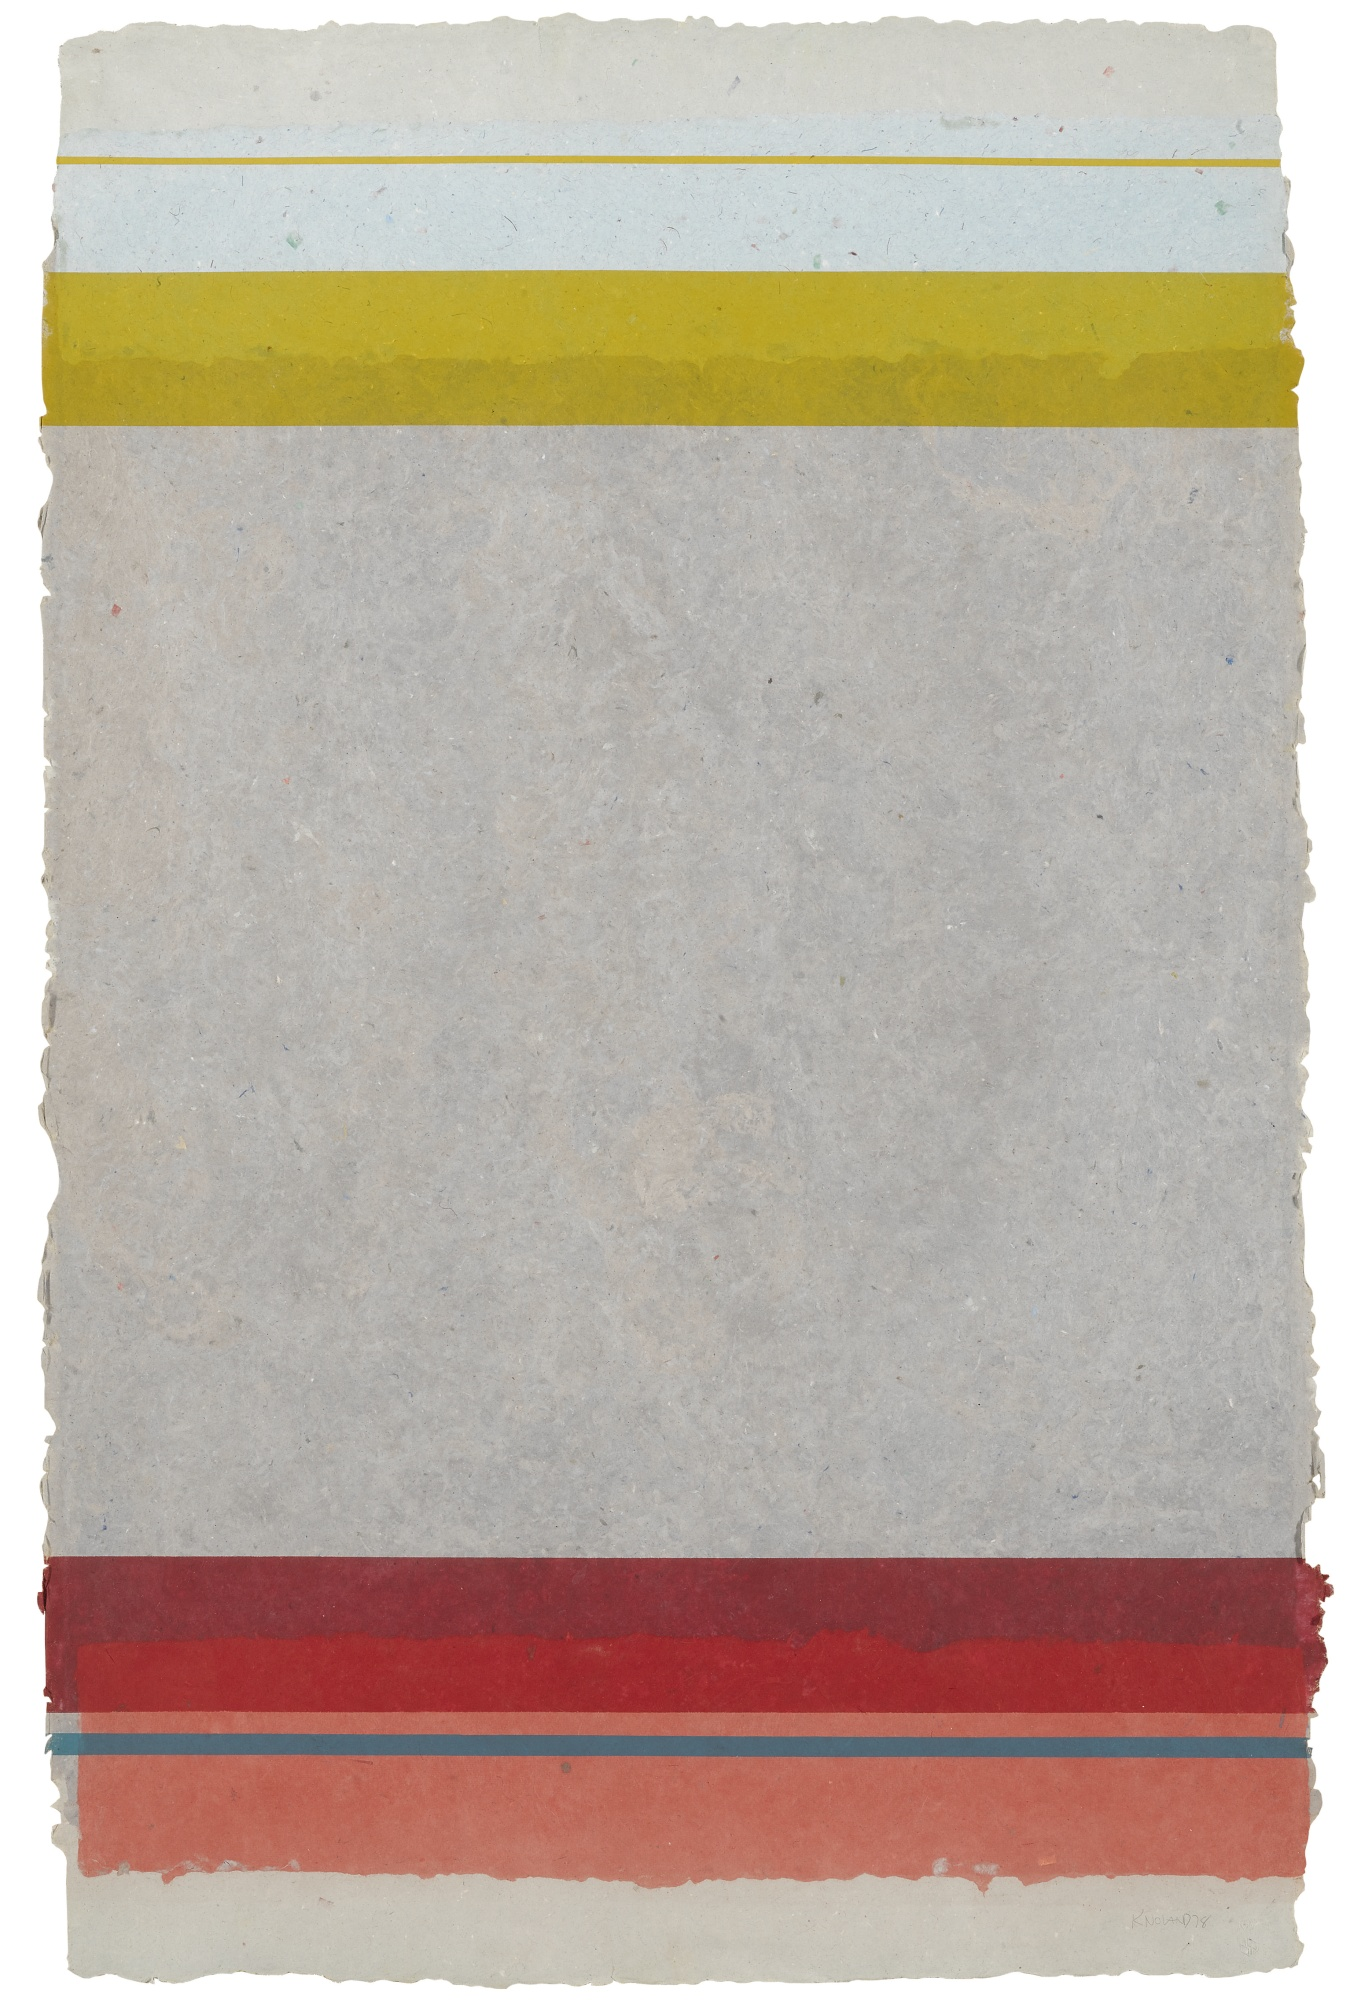 Kenneth Noland-Horizontal Strips V-11 (Tyler 470:Kn320)-1978